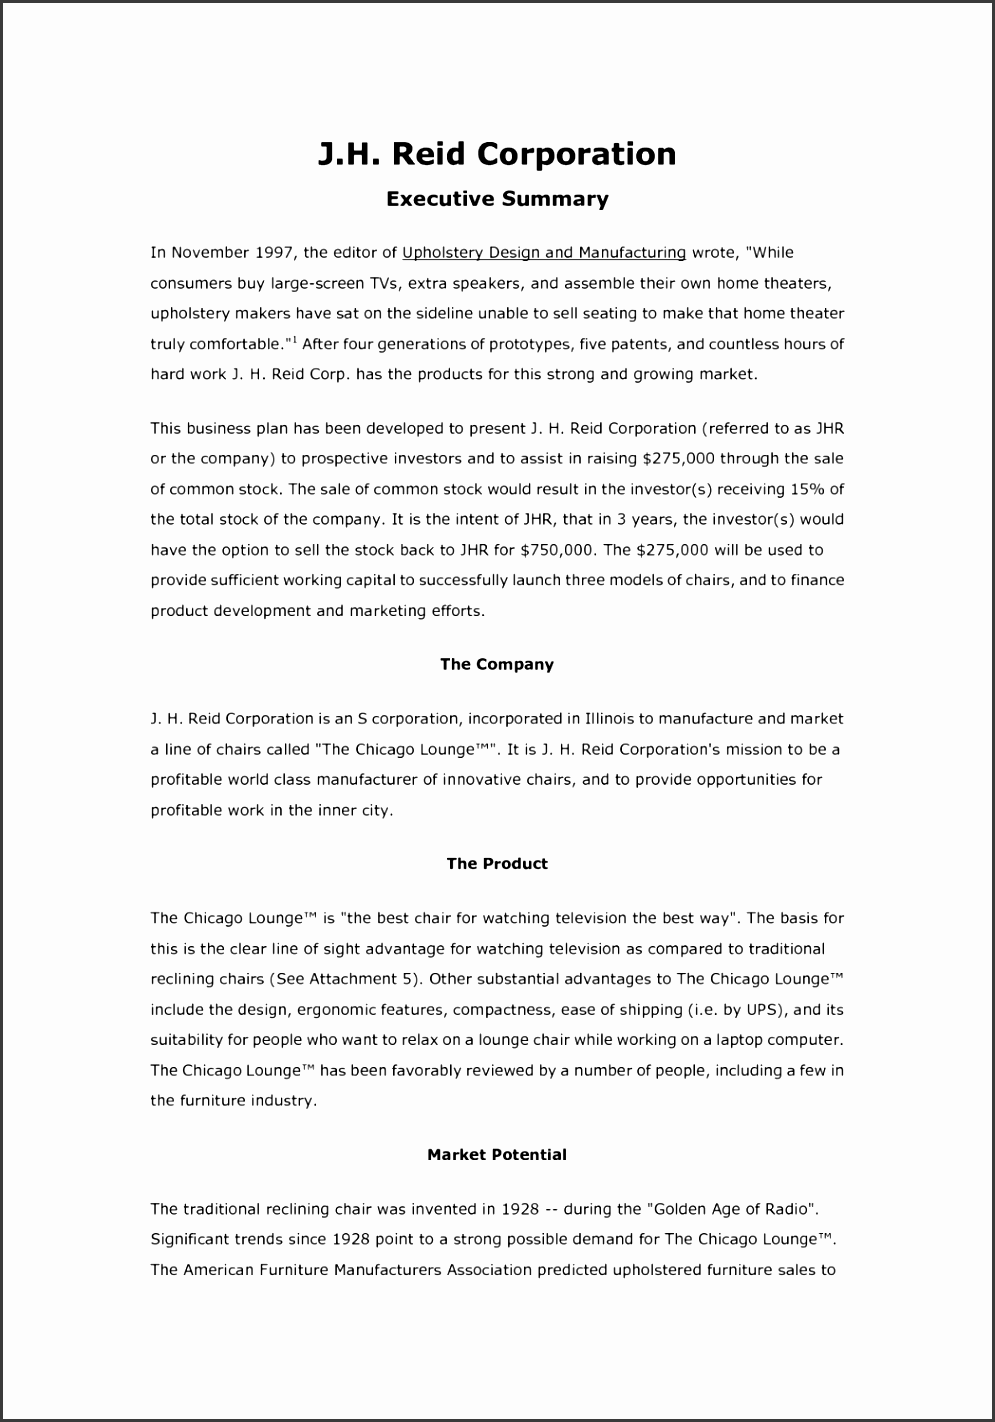 9 Biography Template In Word SampleTemplatess Biography Template In Word  3xscq Unique Biography Template Microsoft Word  Microsoft Word Biography Template